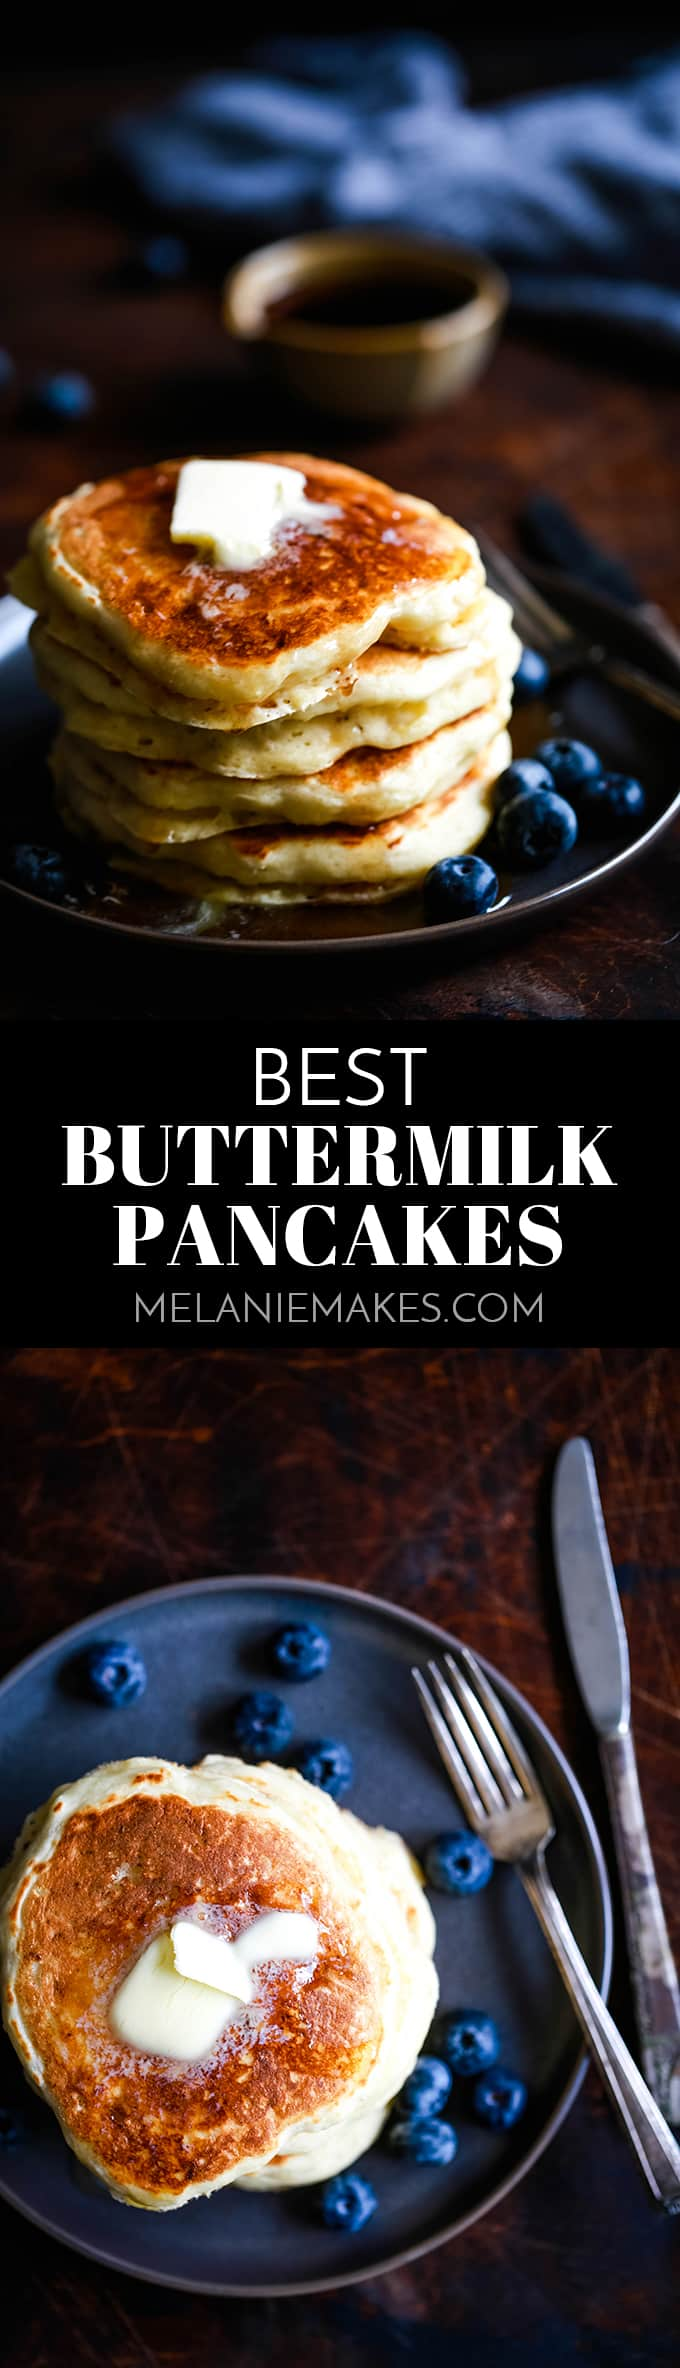 Light and fluffy. Quick and easy. Hands down the Best Buttermilk Pancakes you've ever eaten. #buttermilk #pancakes #breakfastrecipes #brunch #easyrecipe